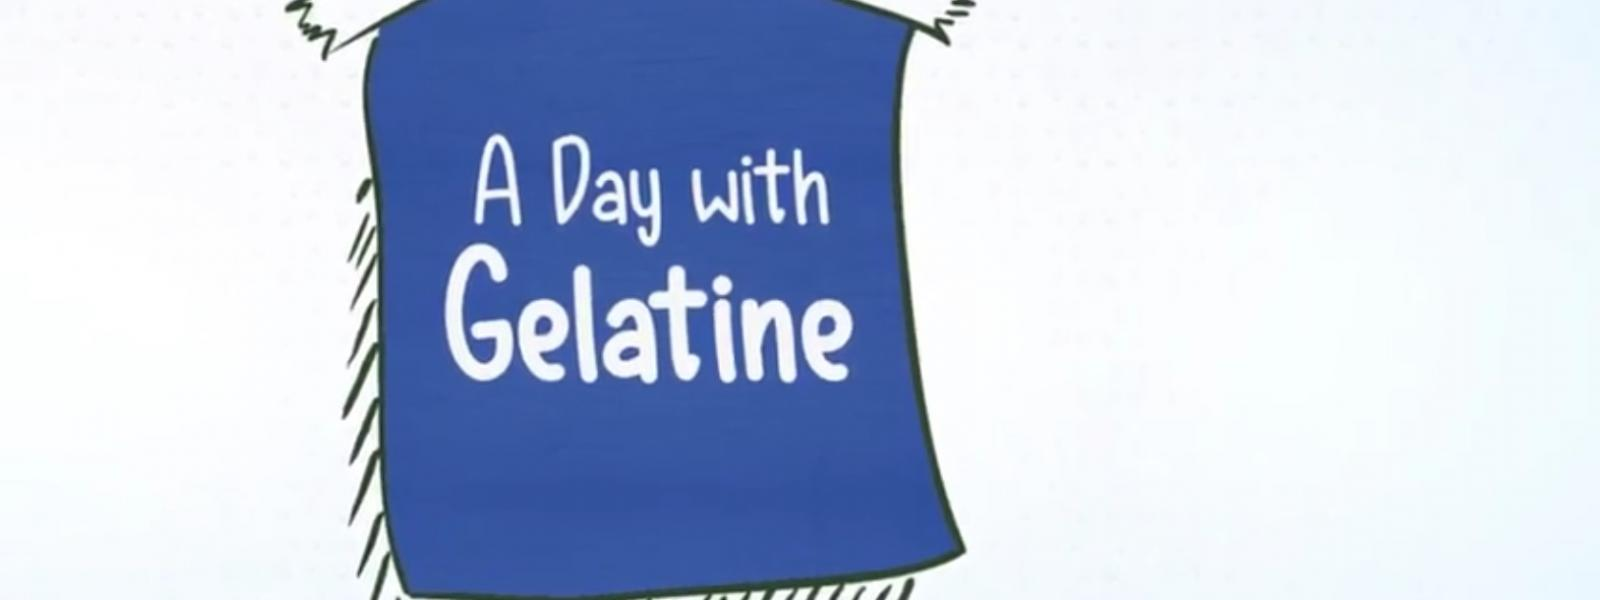 A Day with Gelatine